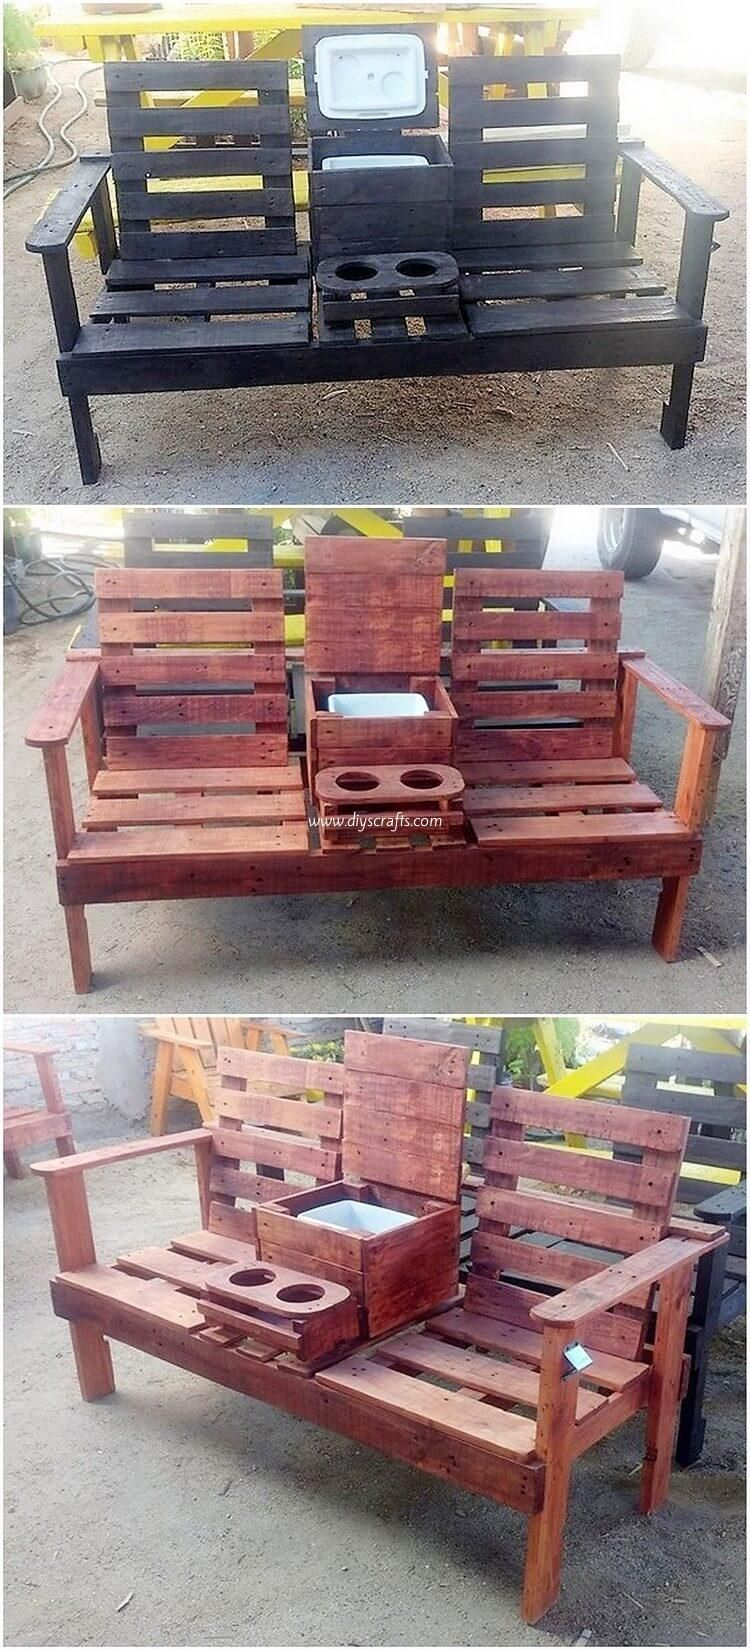 Charming Diy Crafting Ideas With Shipping Pallets Pallet Furniture